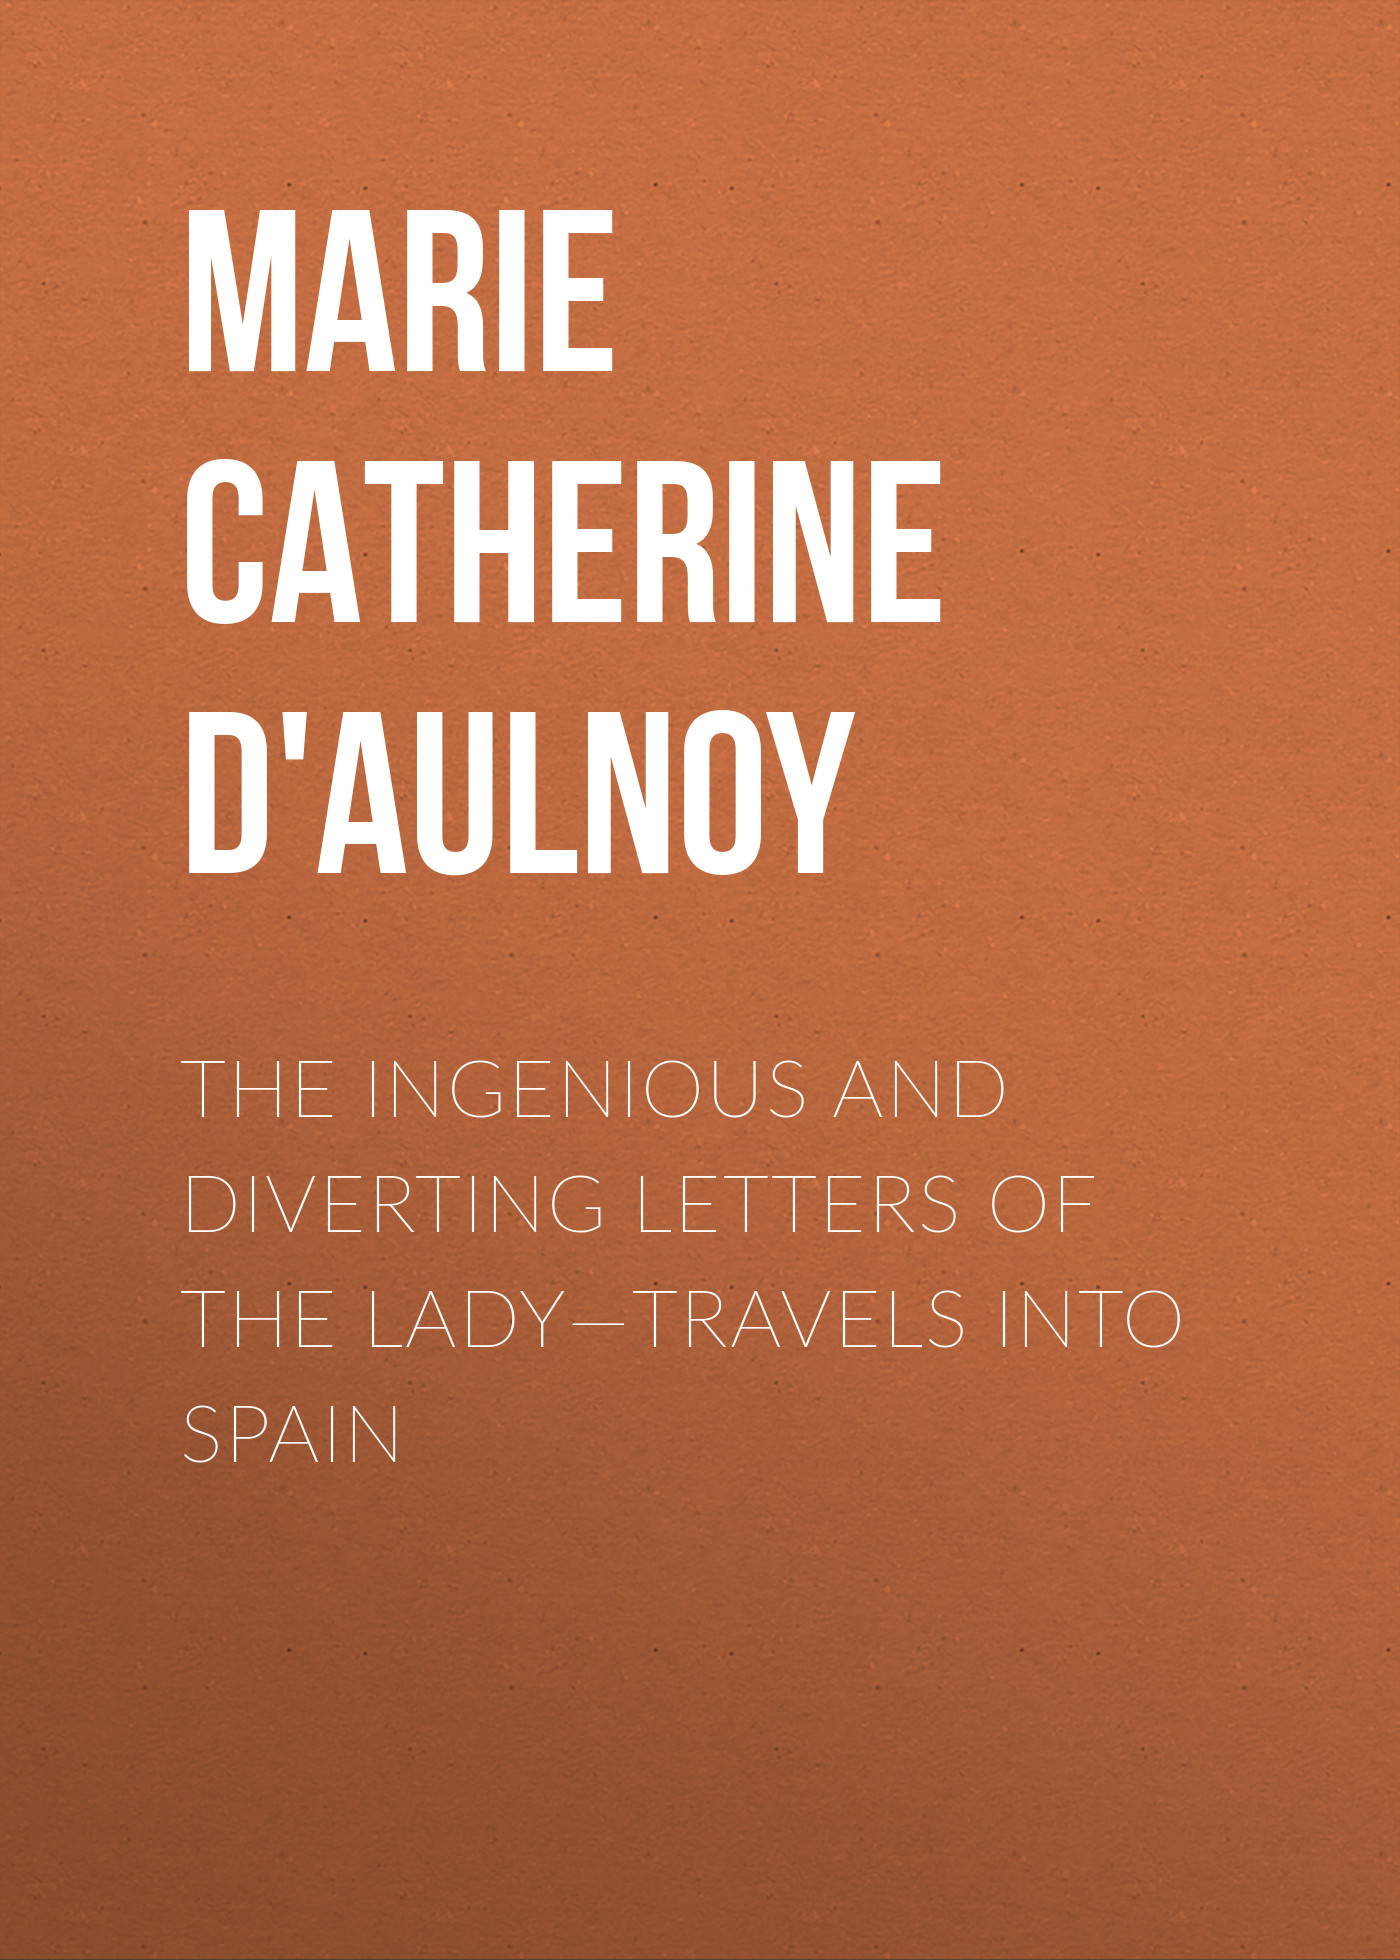 Madame d' Aulnoy Marie-Catherine The Ingenious and Diverting Letters of the Lady—Travels into Spain poe e a the mystery of marie roget